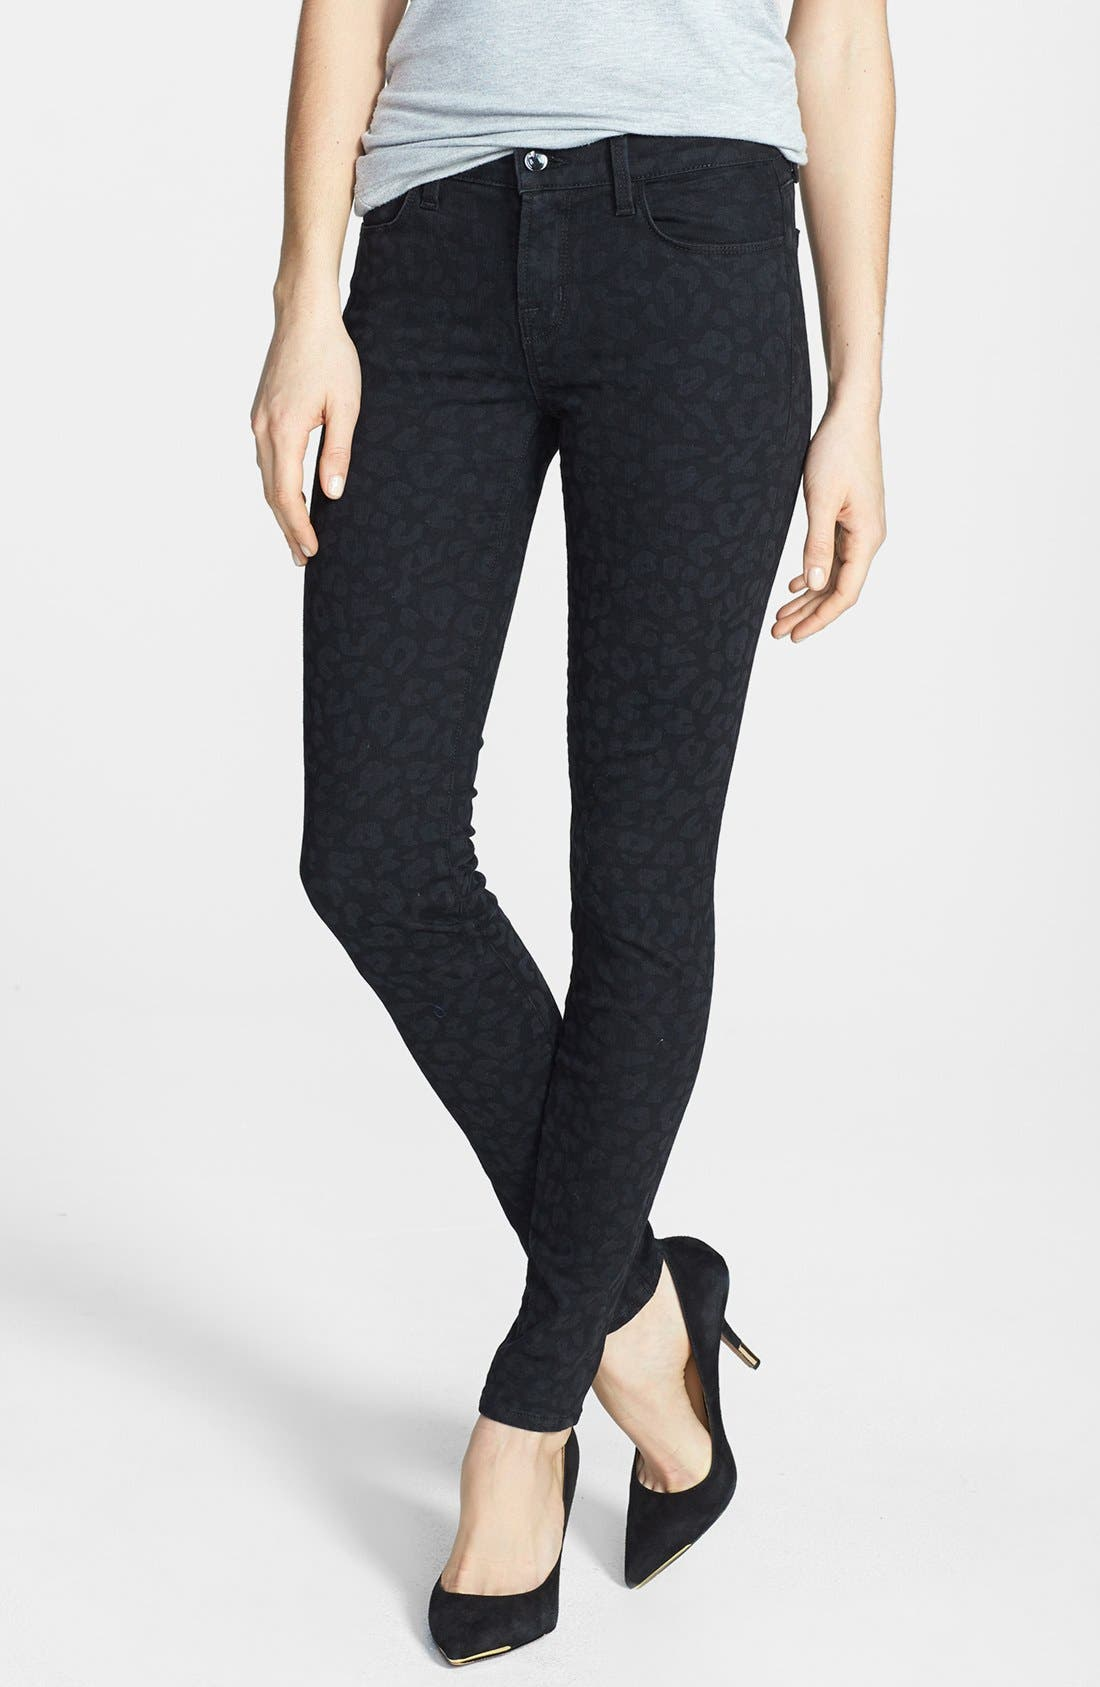 Alternate Image 1 Selected - J Brand '620' Mid Rise Skinny Jeans (Black Leopard)